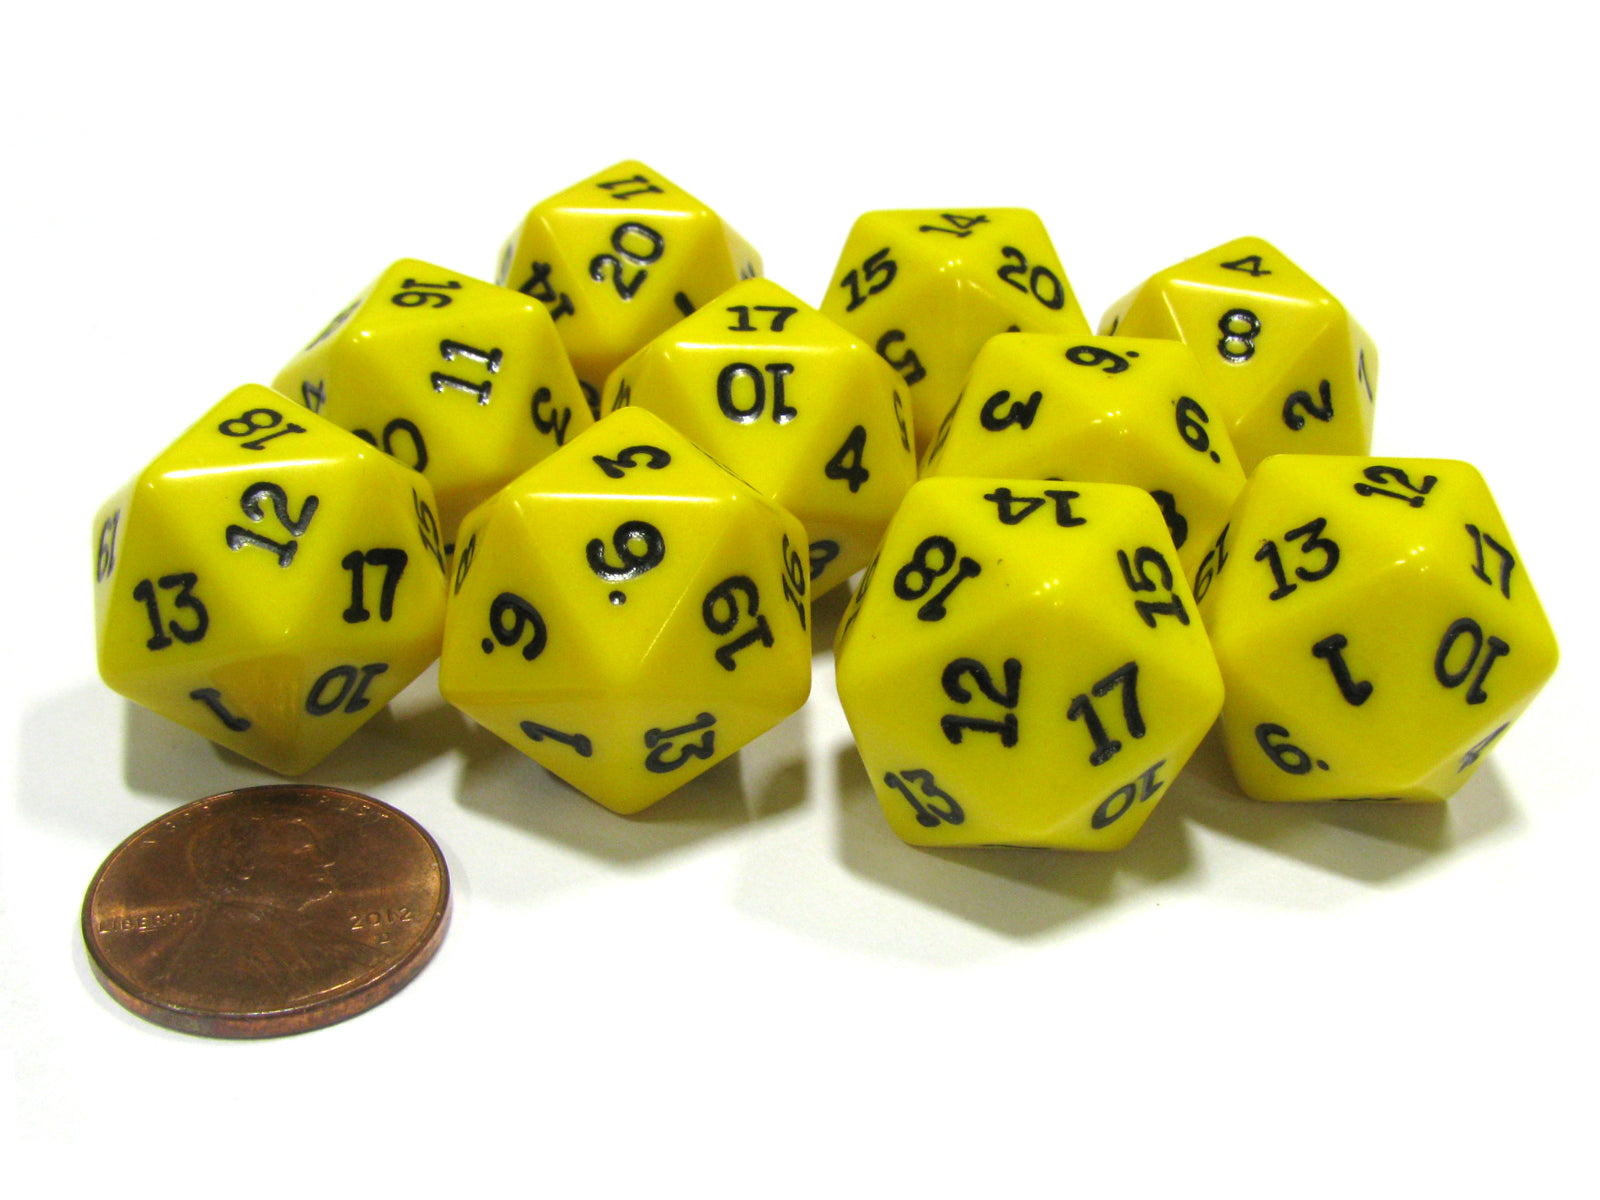 Set of 10 Twenty Sided 19mm D20 Opaque RPG Dice - Yellow with Black Numbers Die